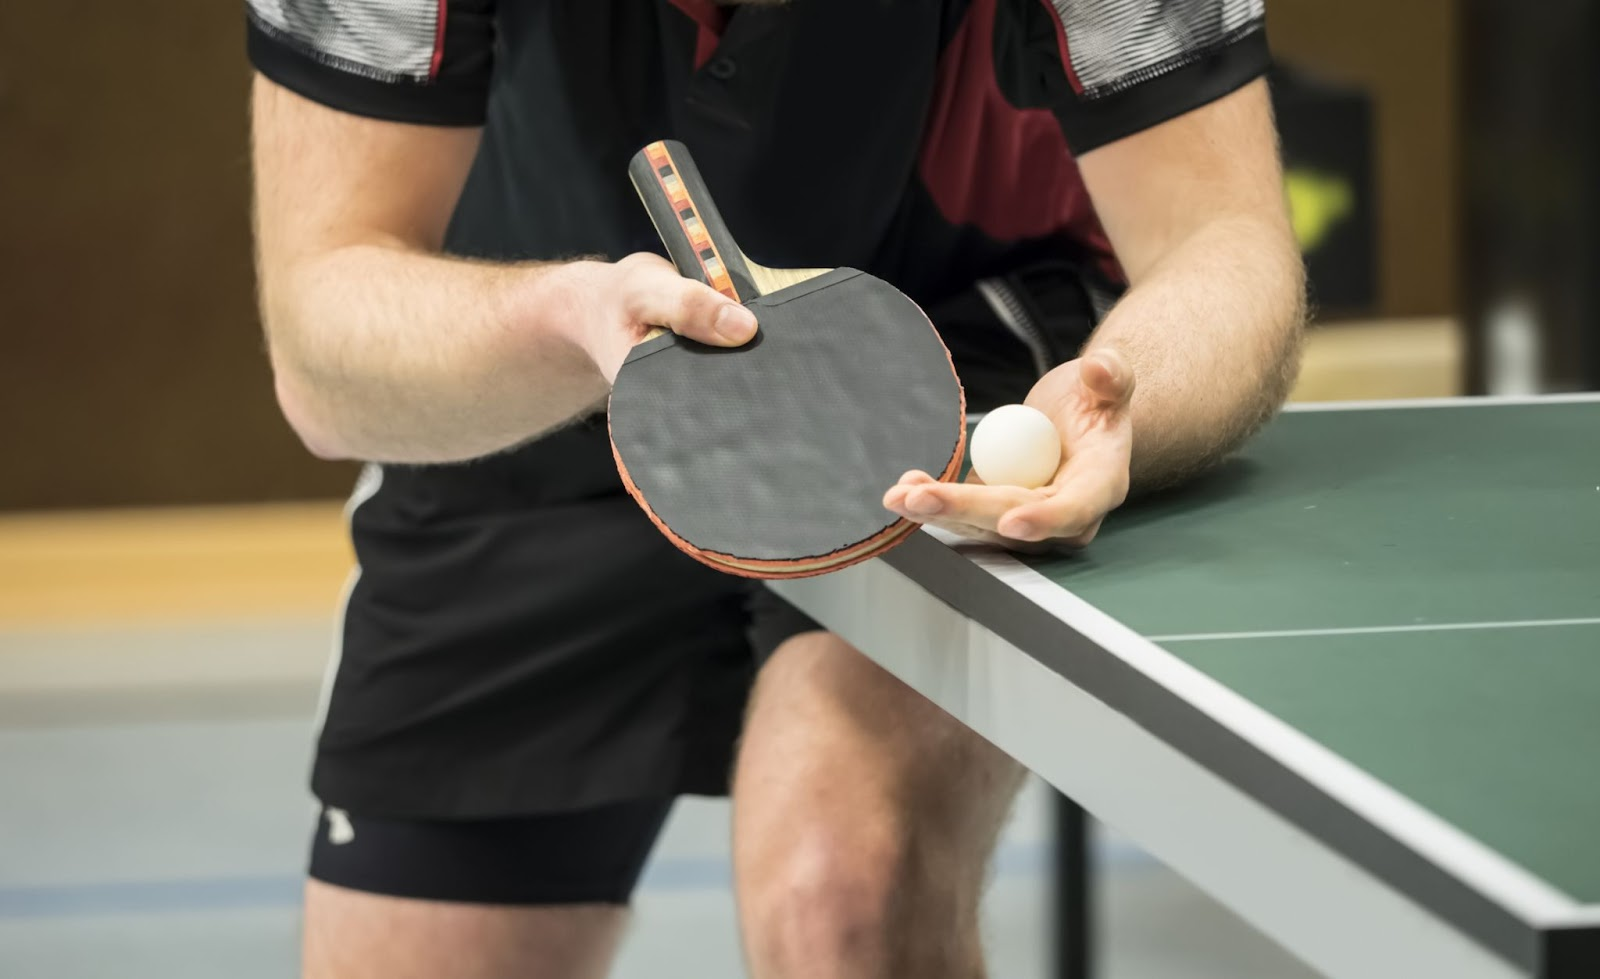 Beginner's Guide: Table Tennis Drills You Can Practice At Home